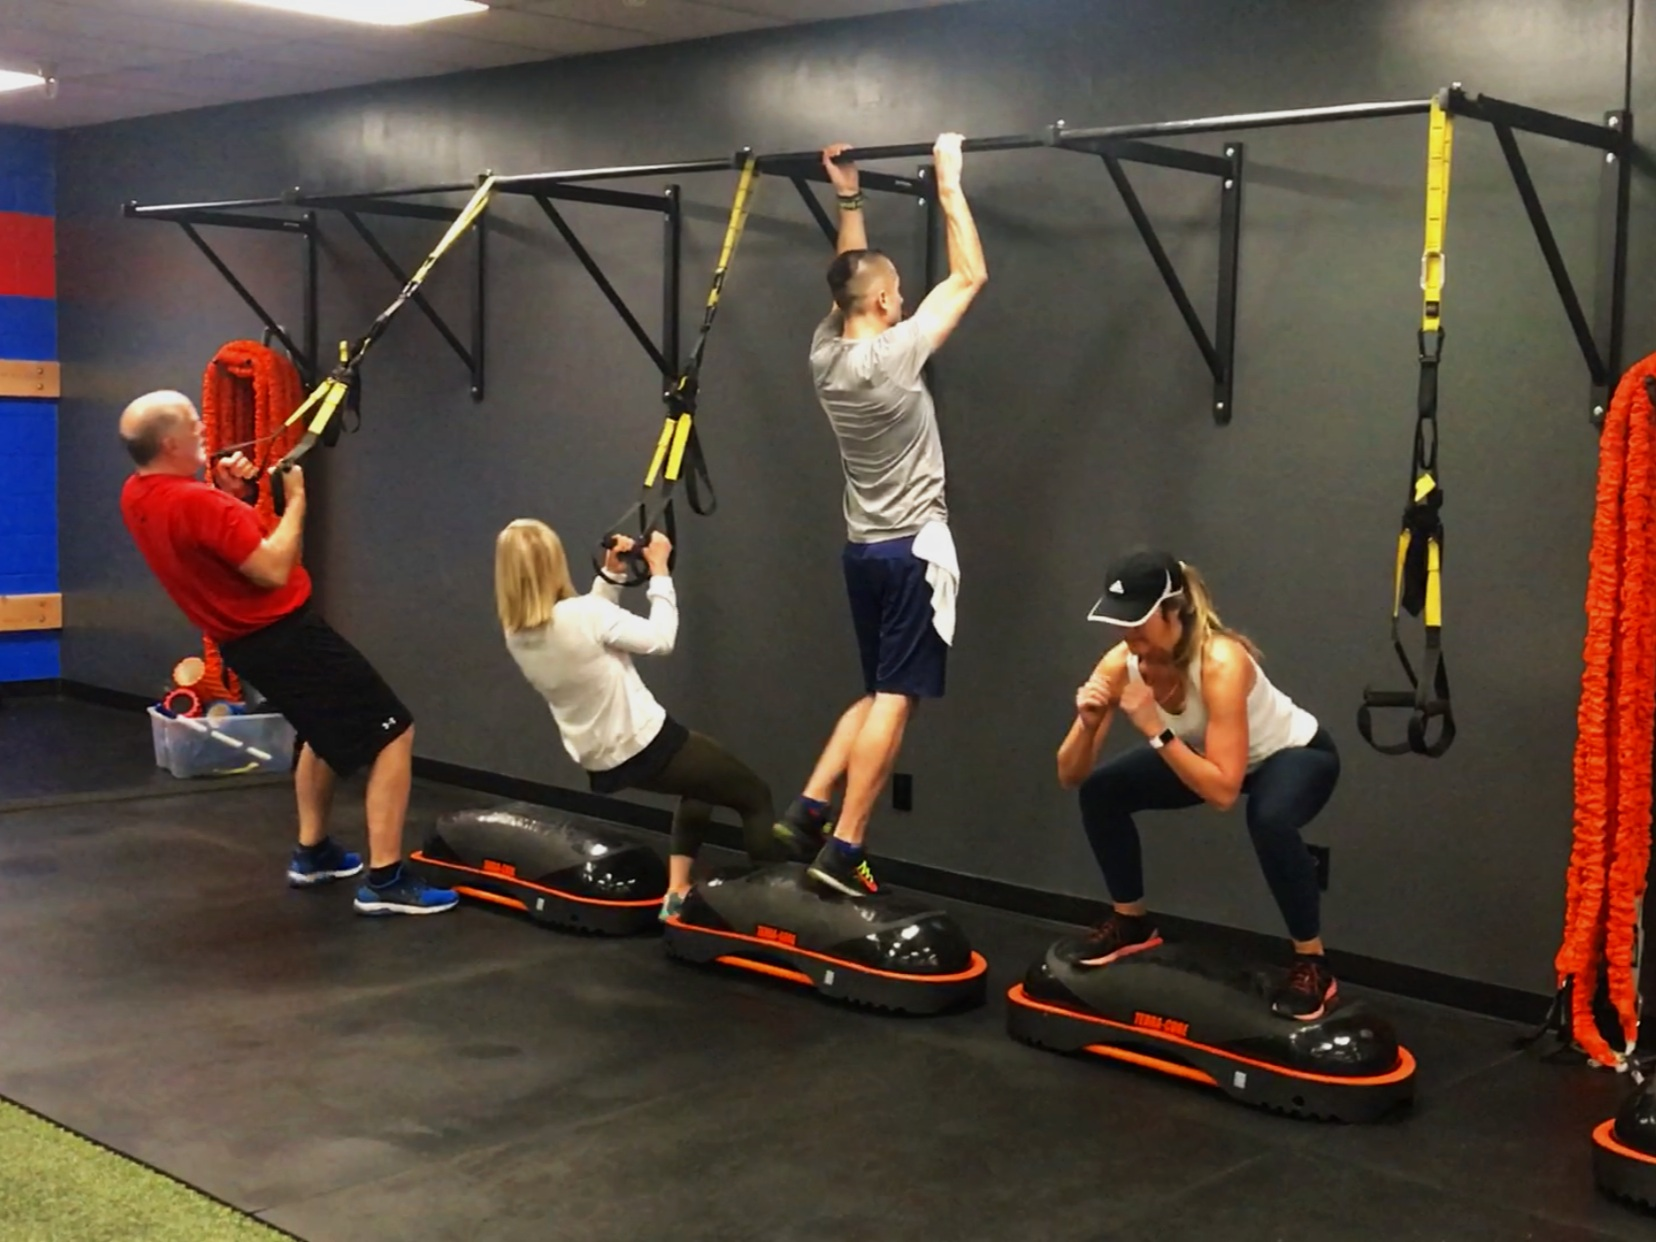 30 Min. Sessions - Fresh daily workoutscertified trainingstate-of-the-art equipment